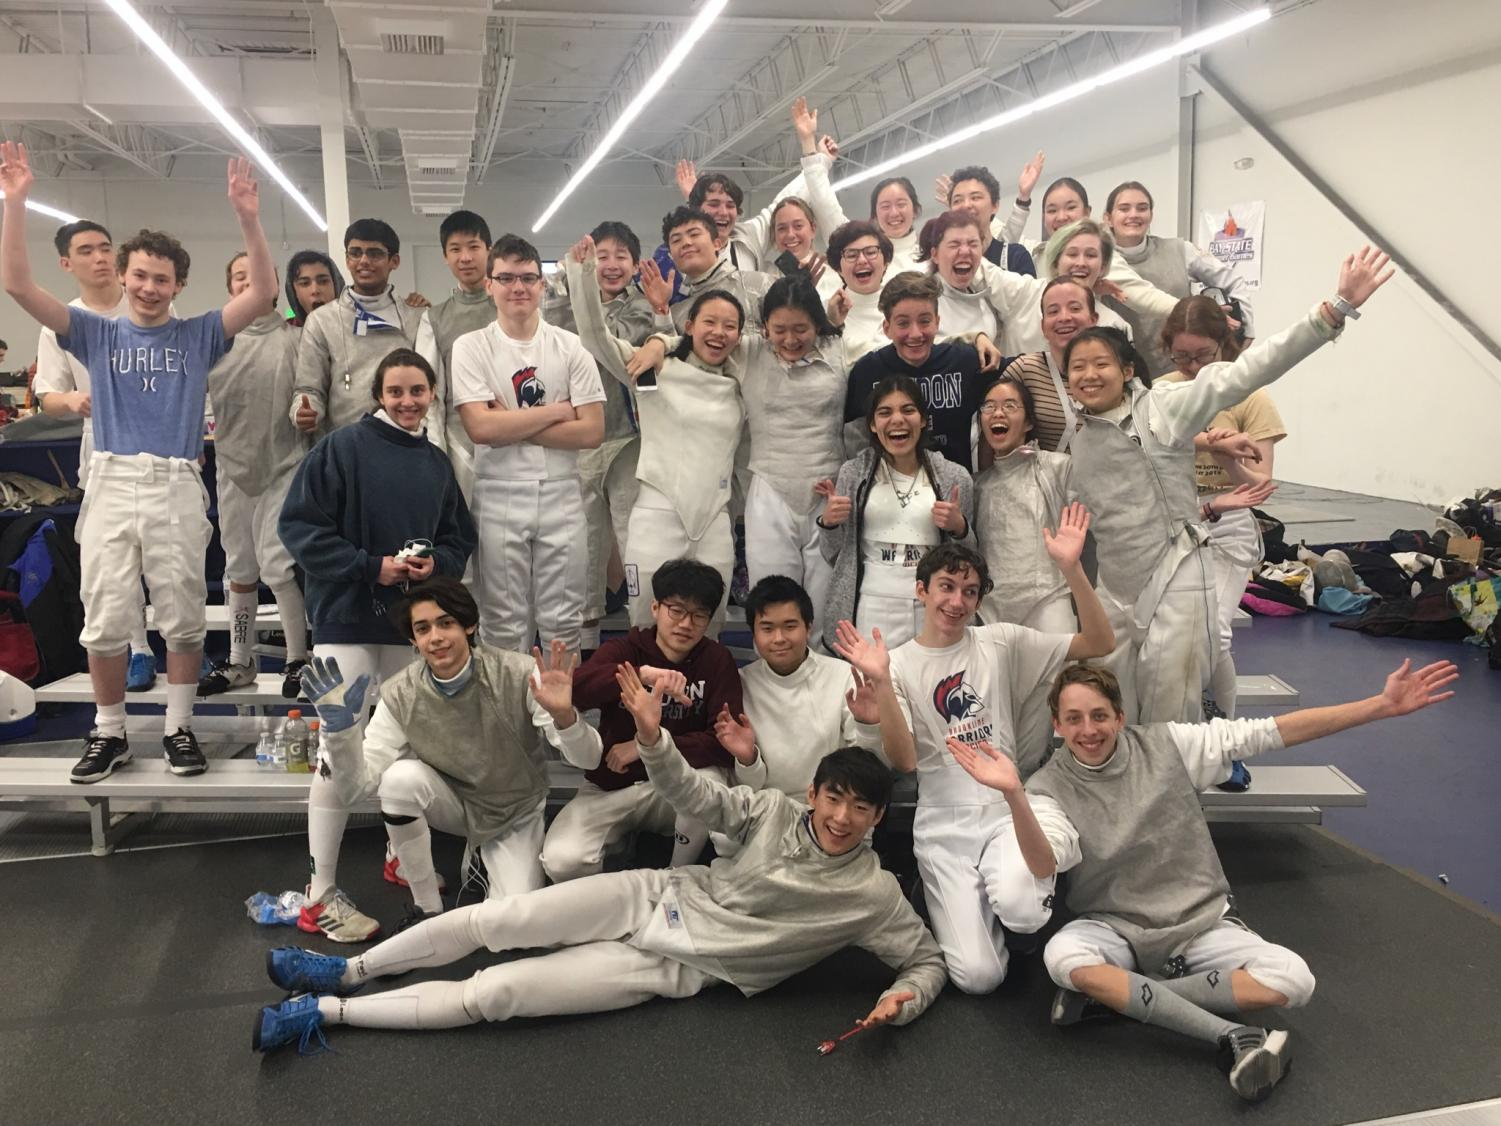 The fencing team focuses on team spirit and supporting each Other. Senior Kaesha Marantz said the team is special since it prioritizes relationships between fencers.